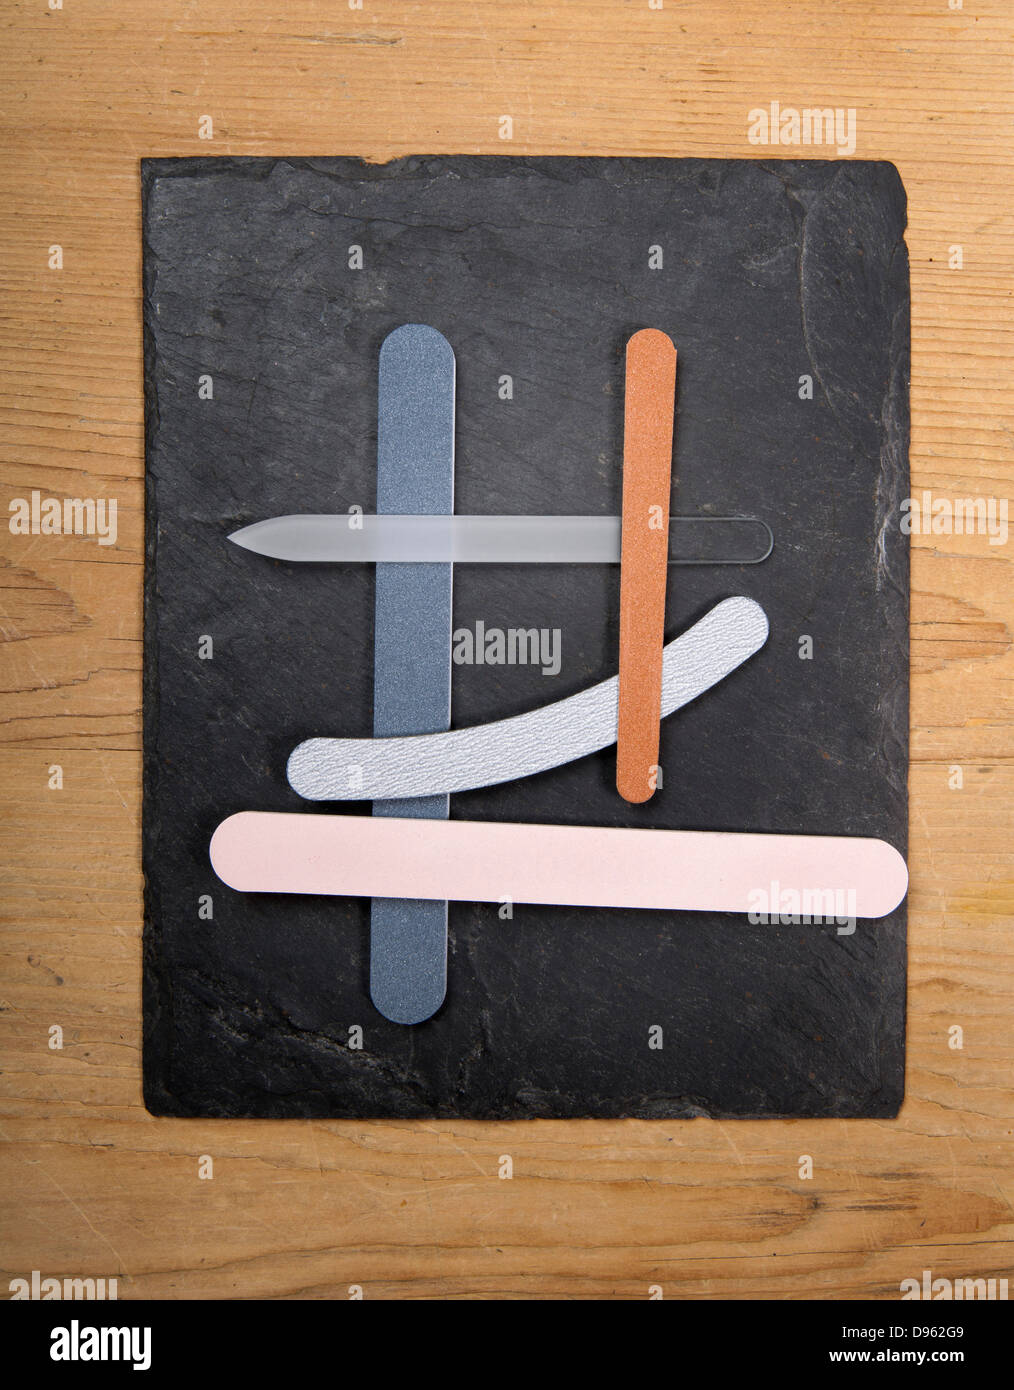 Nail file, emery boards on slate board, close up - Stock Image